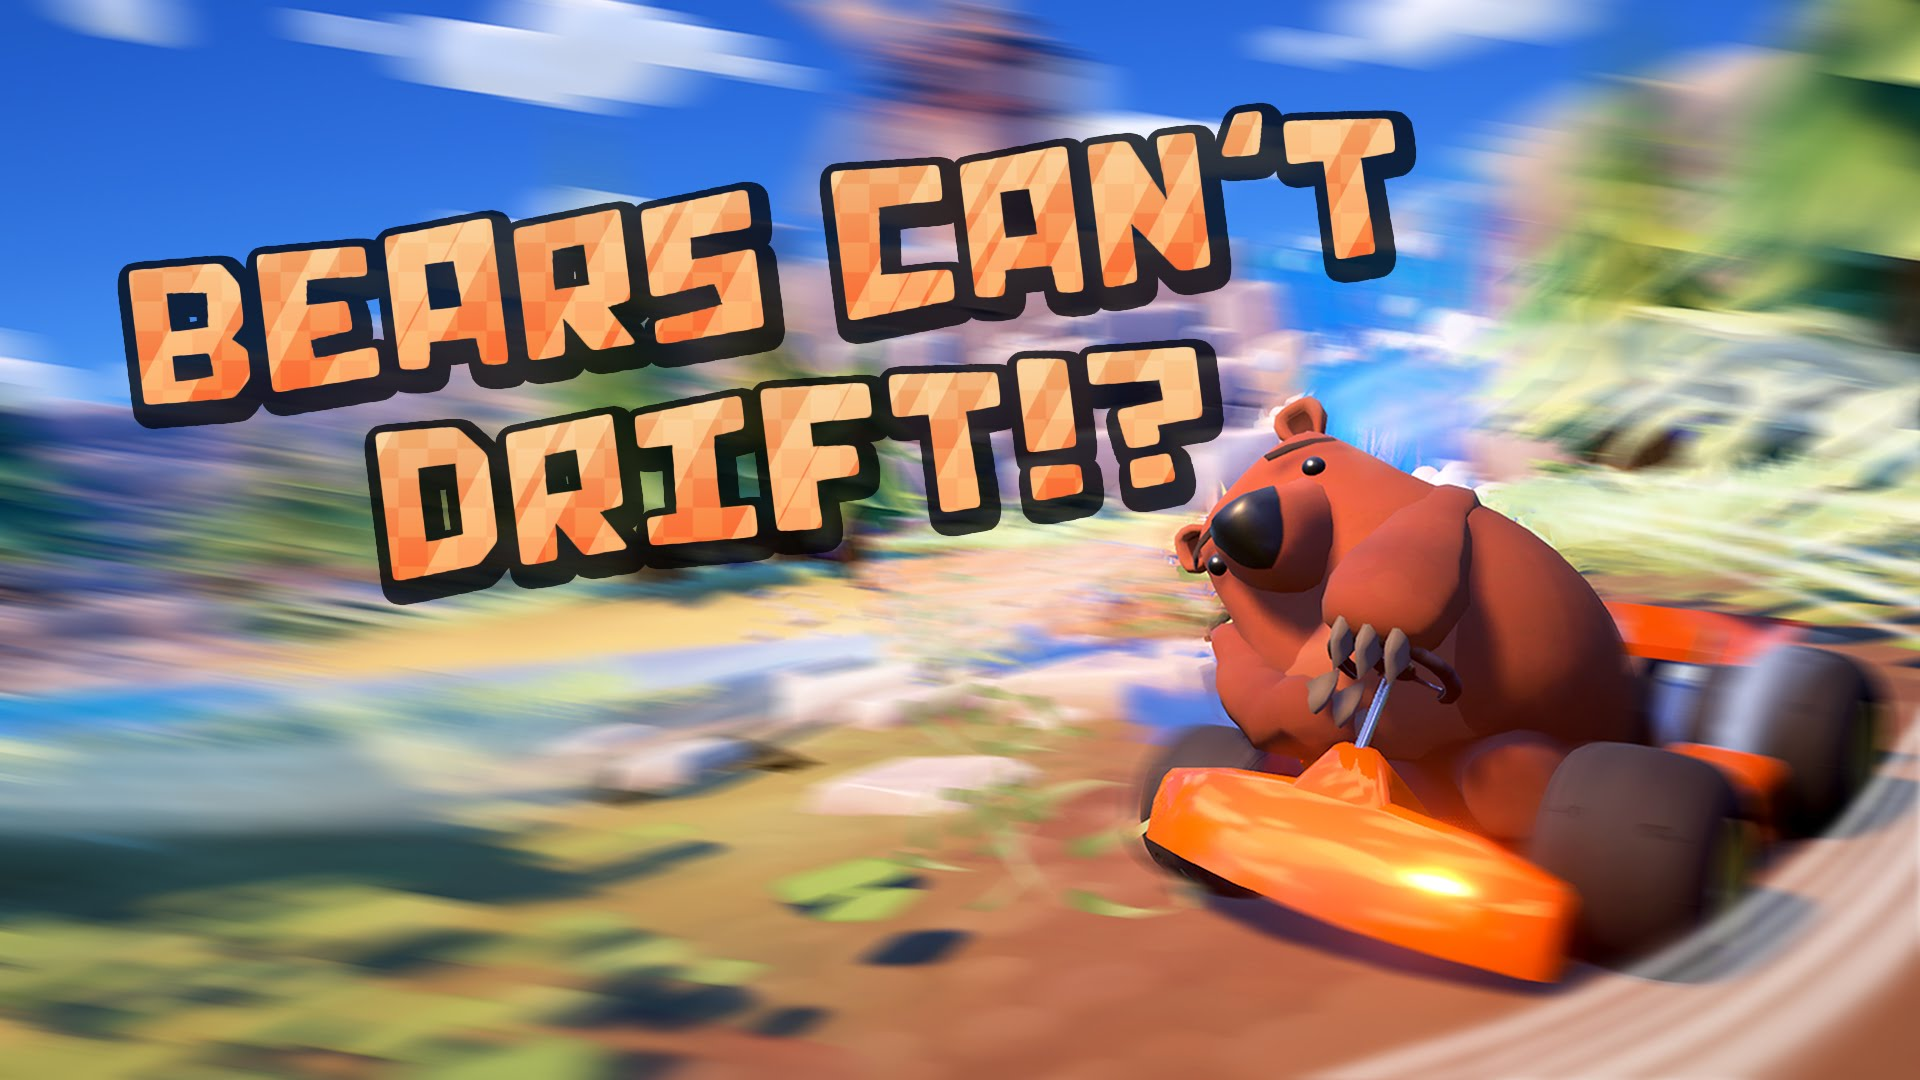 Bears Can't Drift!? is a love letter to classic kart racers